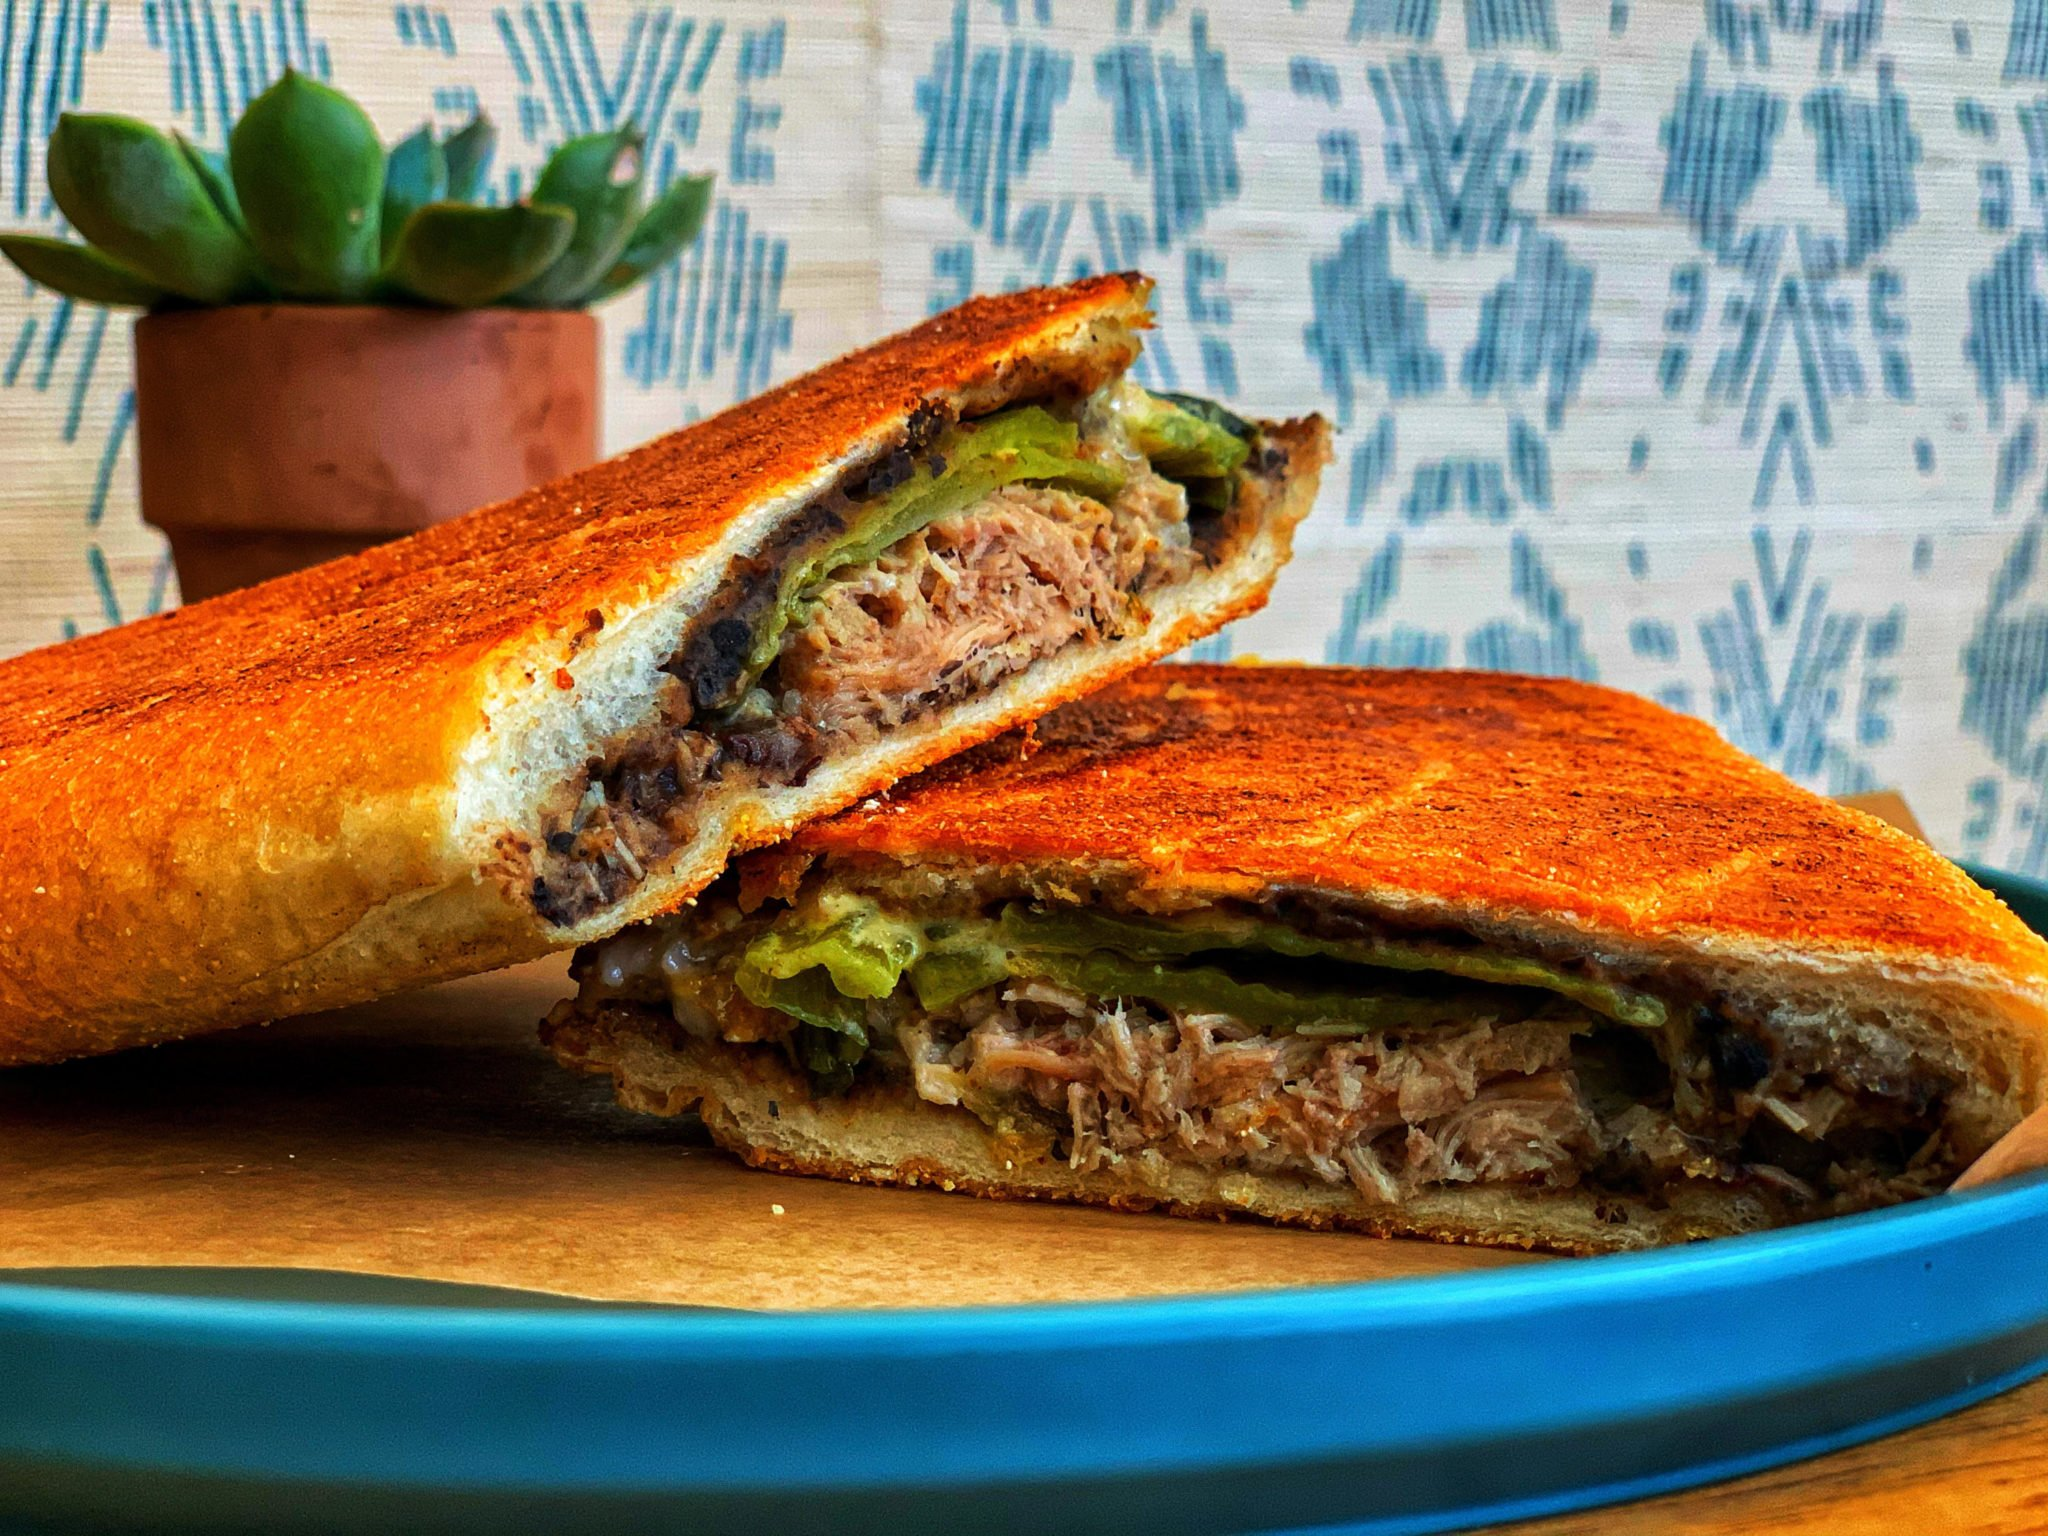 Colada Shop is celebrating National Cuban Sandwich Day with a Thamee Cubano collaboration. Photo courtesy of Colada Shop.